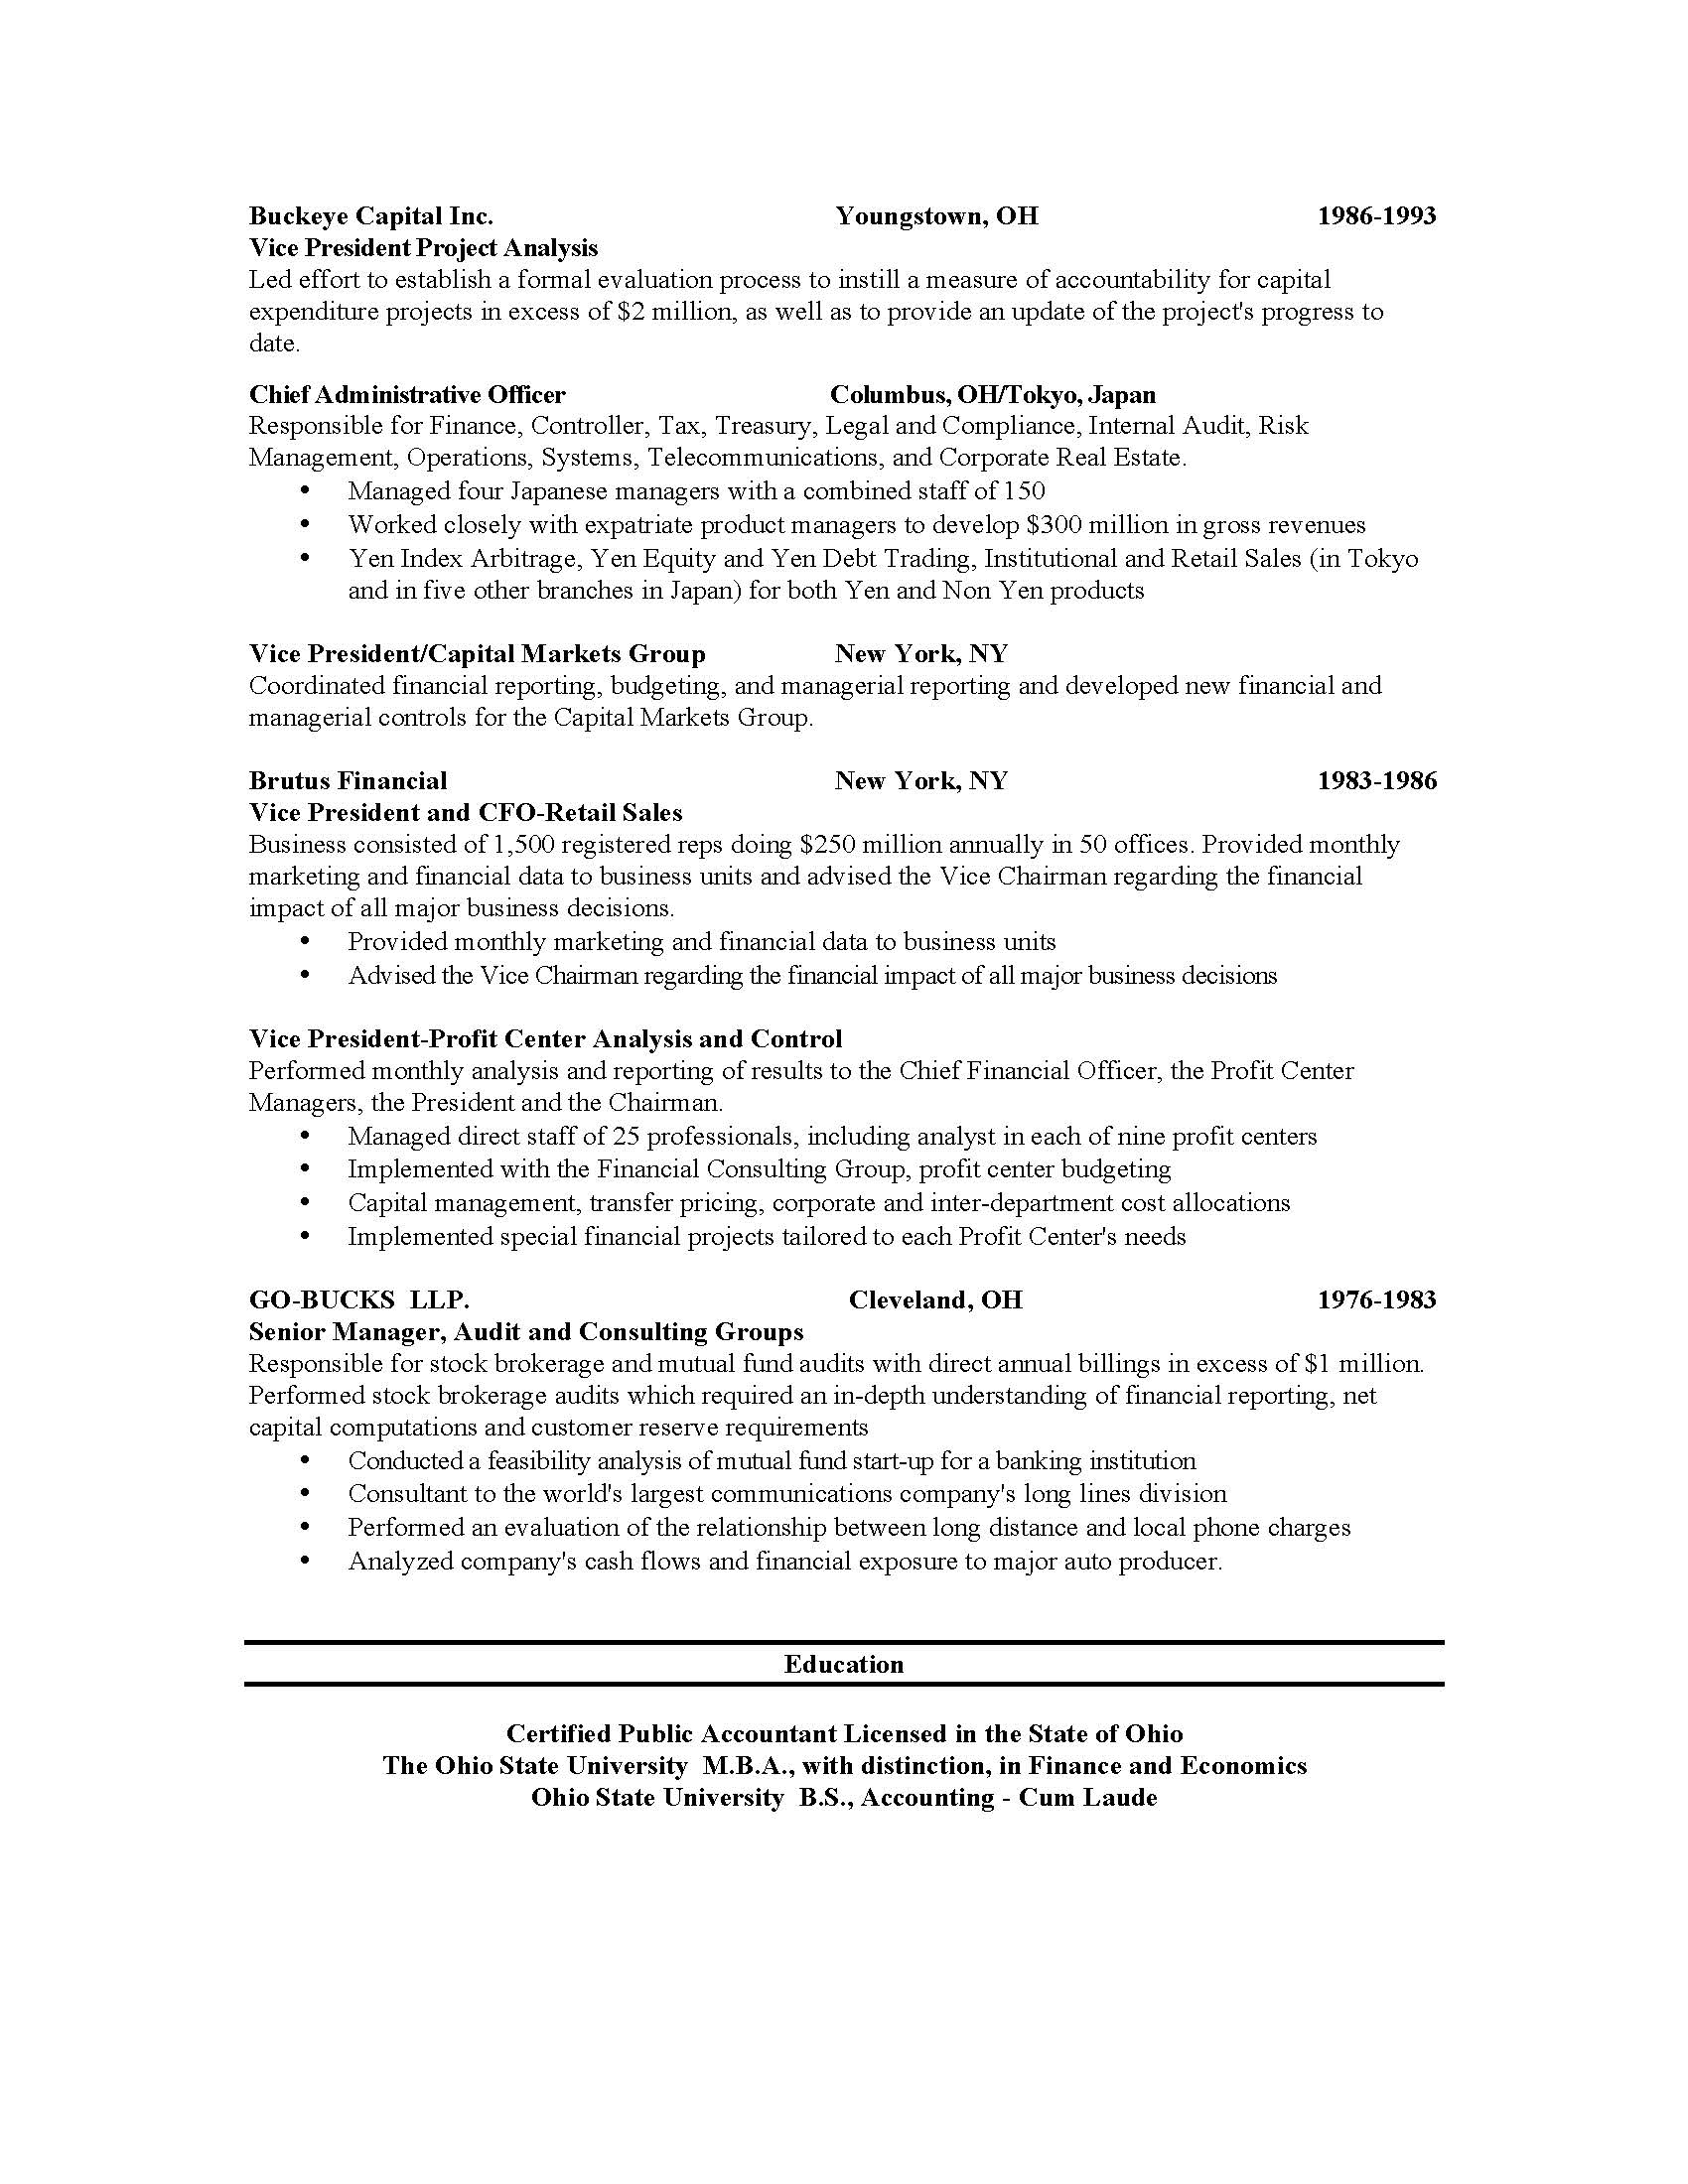 Chronological Resume2  How To Prepare A Cover Letter